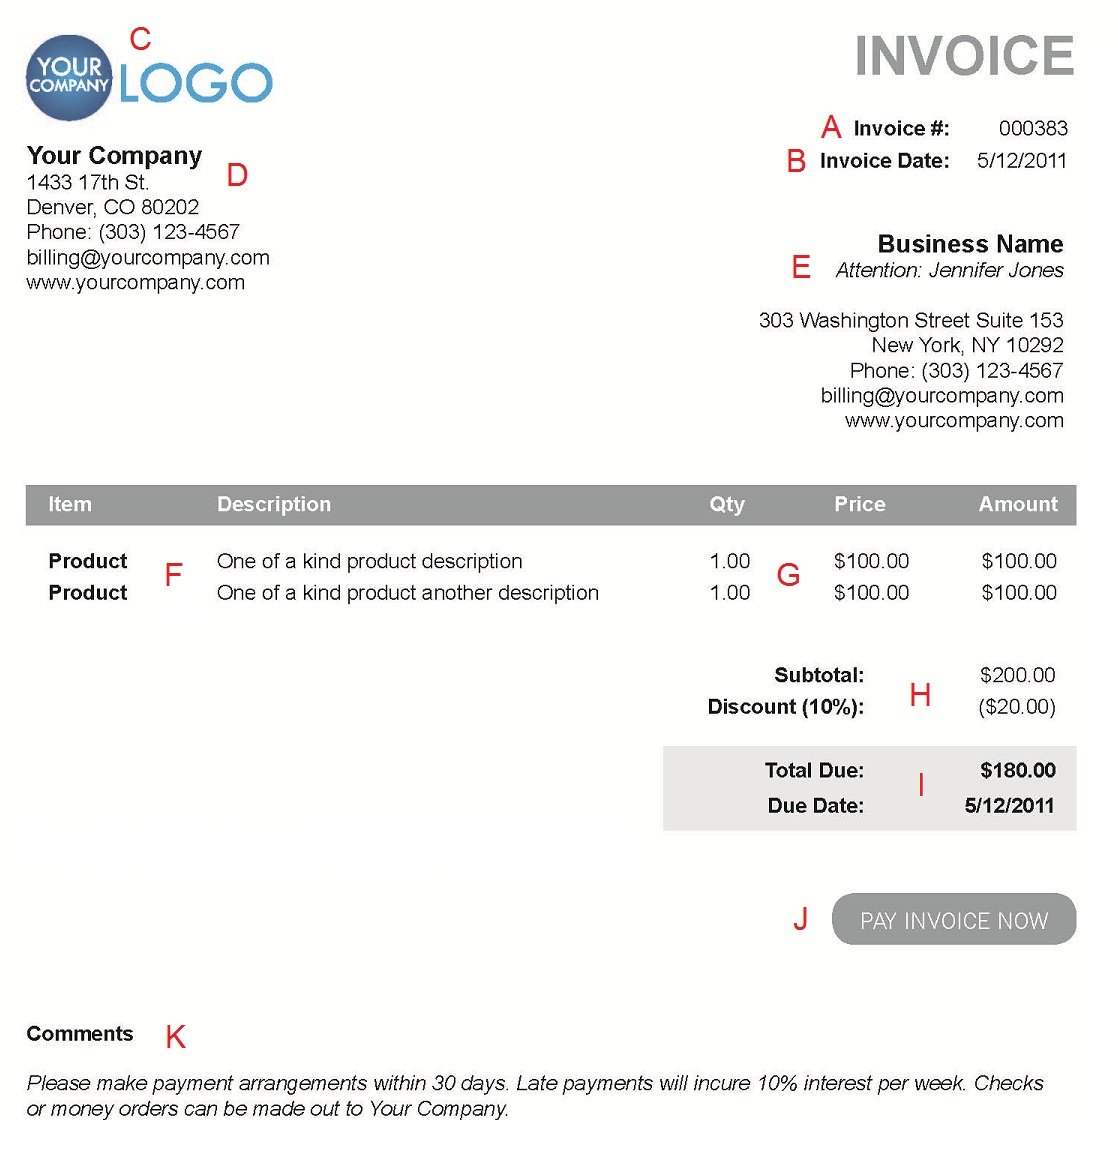 Coolmathgamesus  Unusual The  Different Sections Of An Electronic Payment Invoice With Excellent A  With Archaic Express Invoice Free Download Also Myob Invoices In Addition Dealer Invoice Price On New Cars And Ncr Invoice As Well As Invoice Accounting Software Additionally Excel Invoice Format From Paysimplecom With Coolmathgamesus  Excellent The  Different Sections Of An Electronic Payment Invoice With Archaic A  And Unusual Express Invoice Free Download Also Myob Invoices In Addition Dealer Invoice Price On New Cars From Paysimplecom